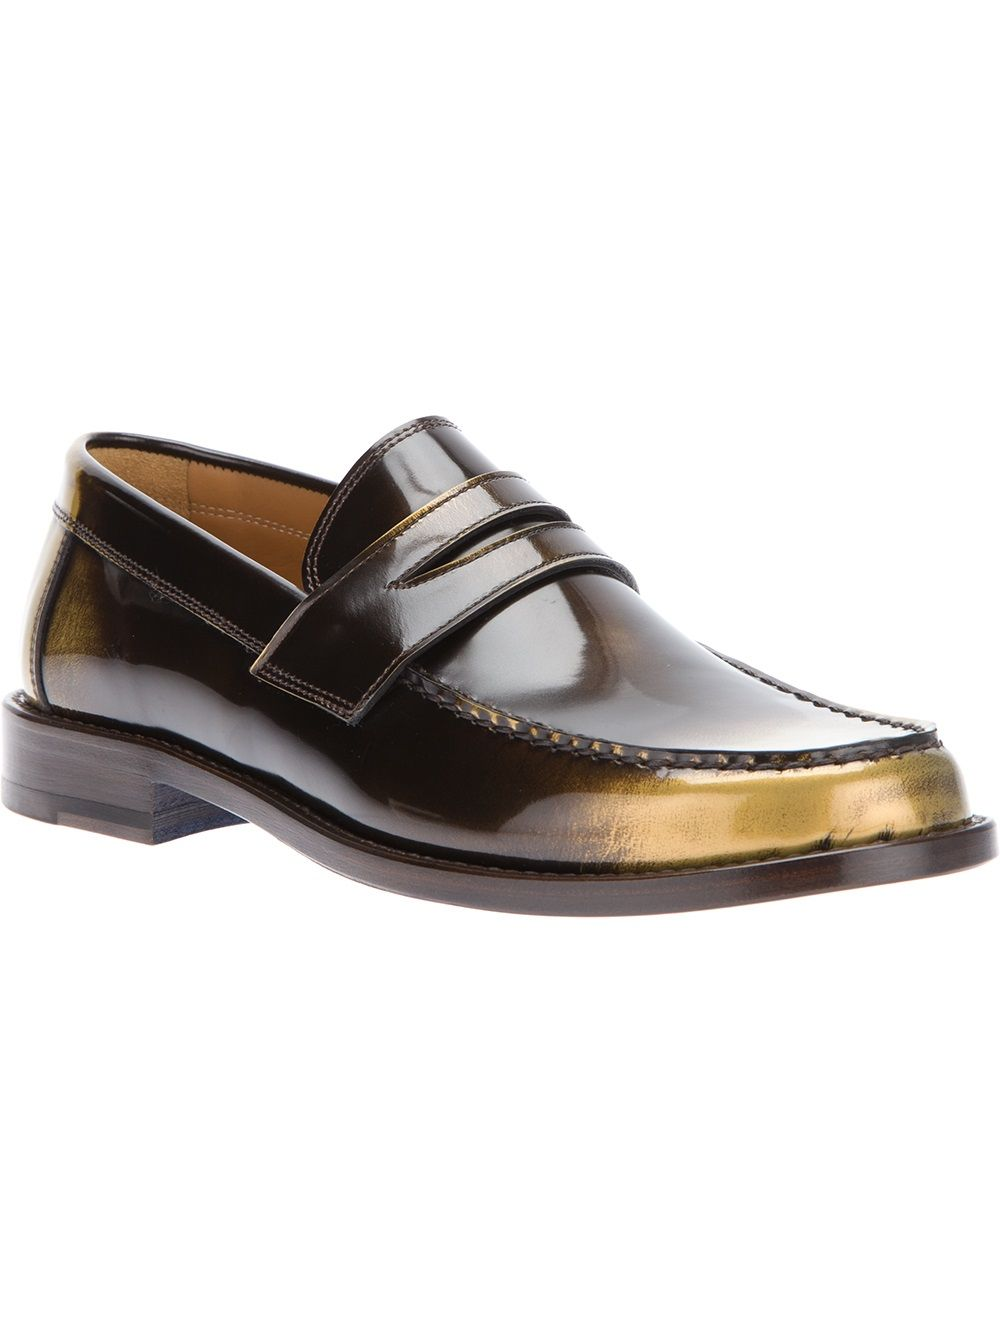 d94f4a1213e Men - Marc Jacobs Brushed Penny Loafer - WOK STORE